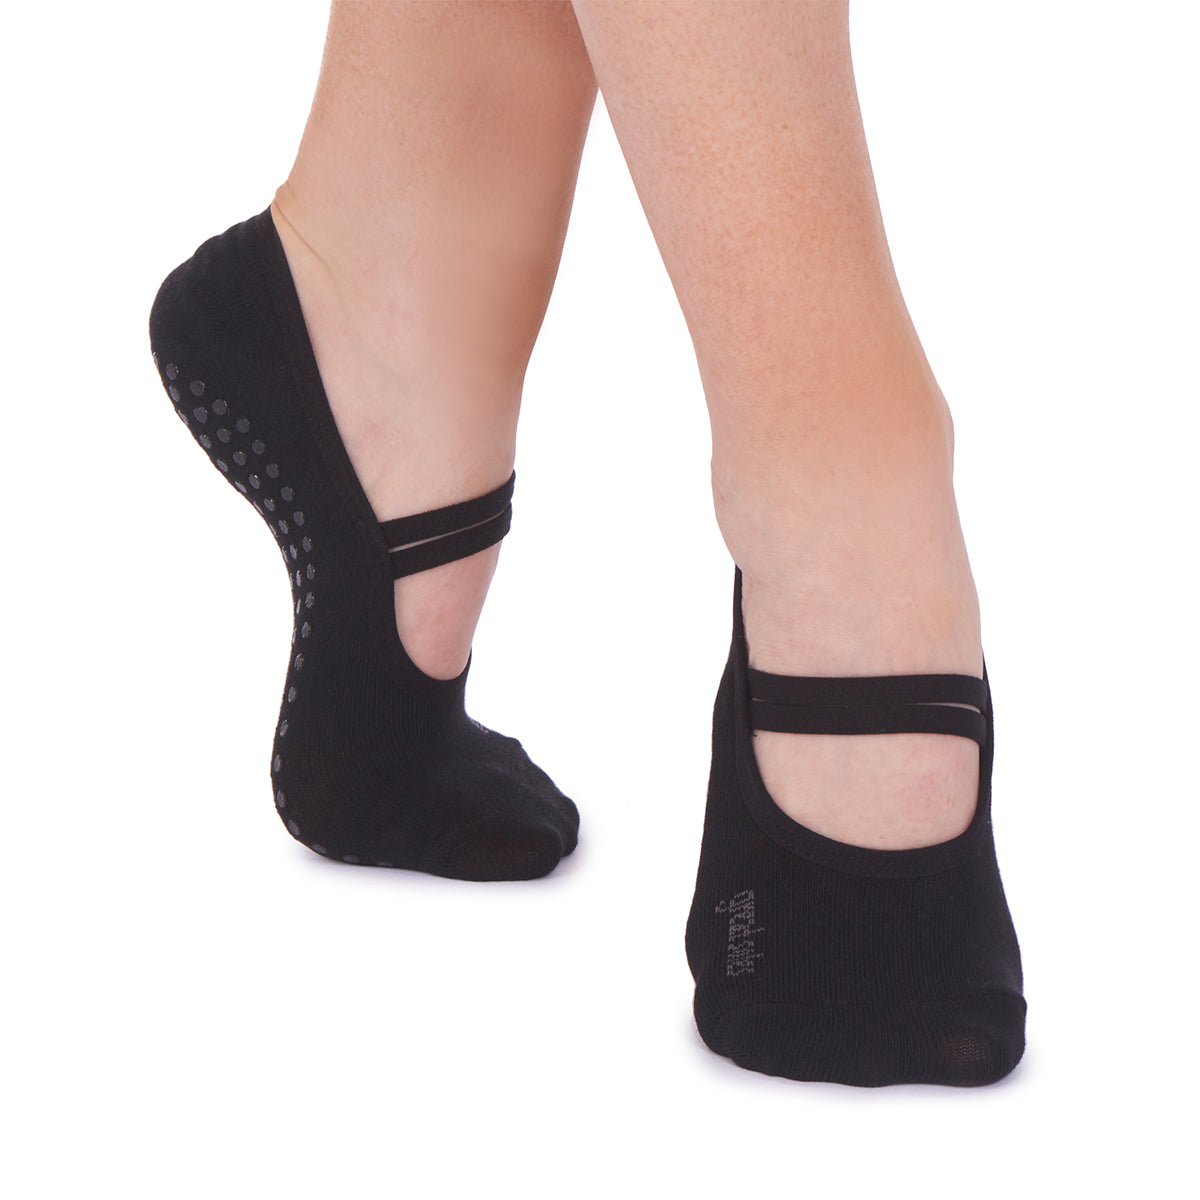 Jules Ballet Grip Sock - Black/Black